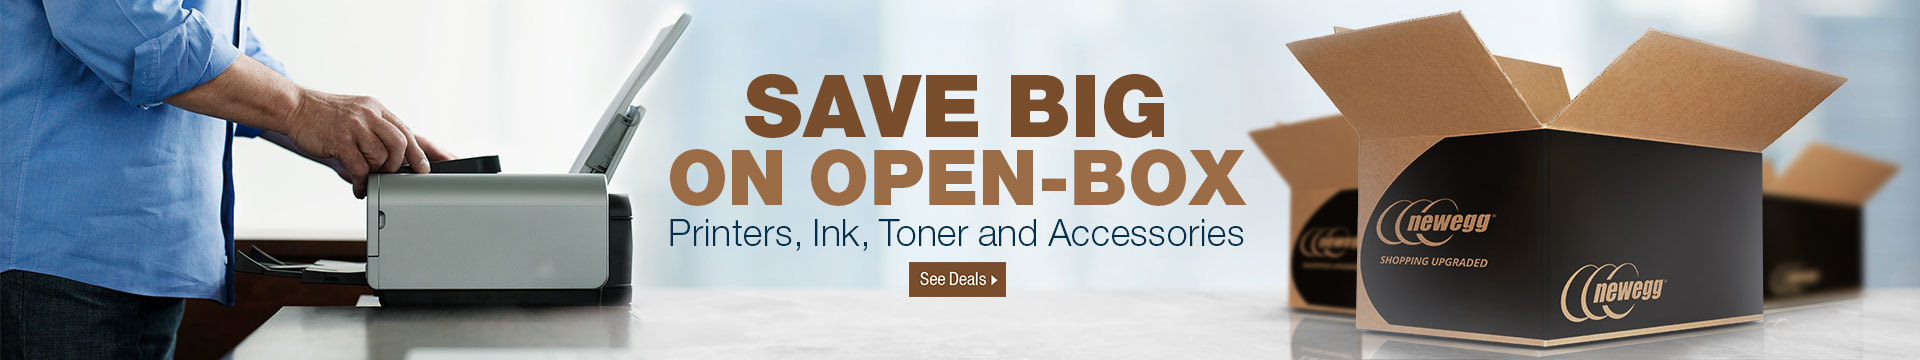 SAVE BIG ON OPEN-BOX